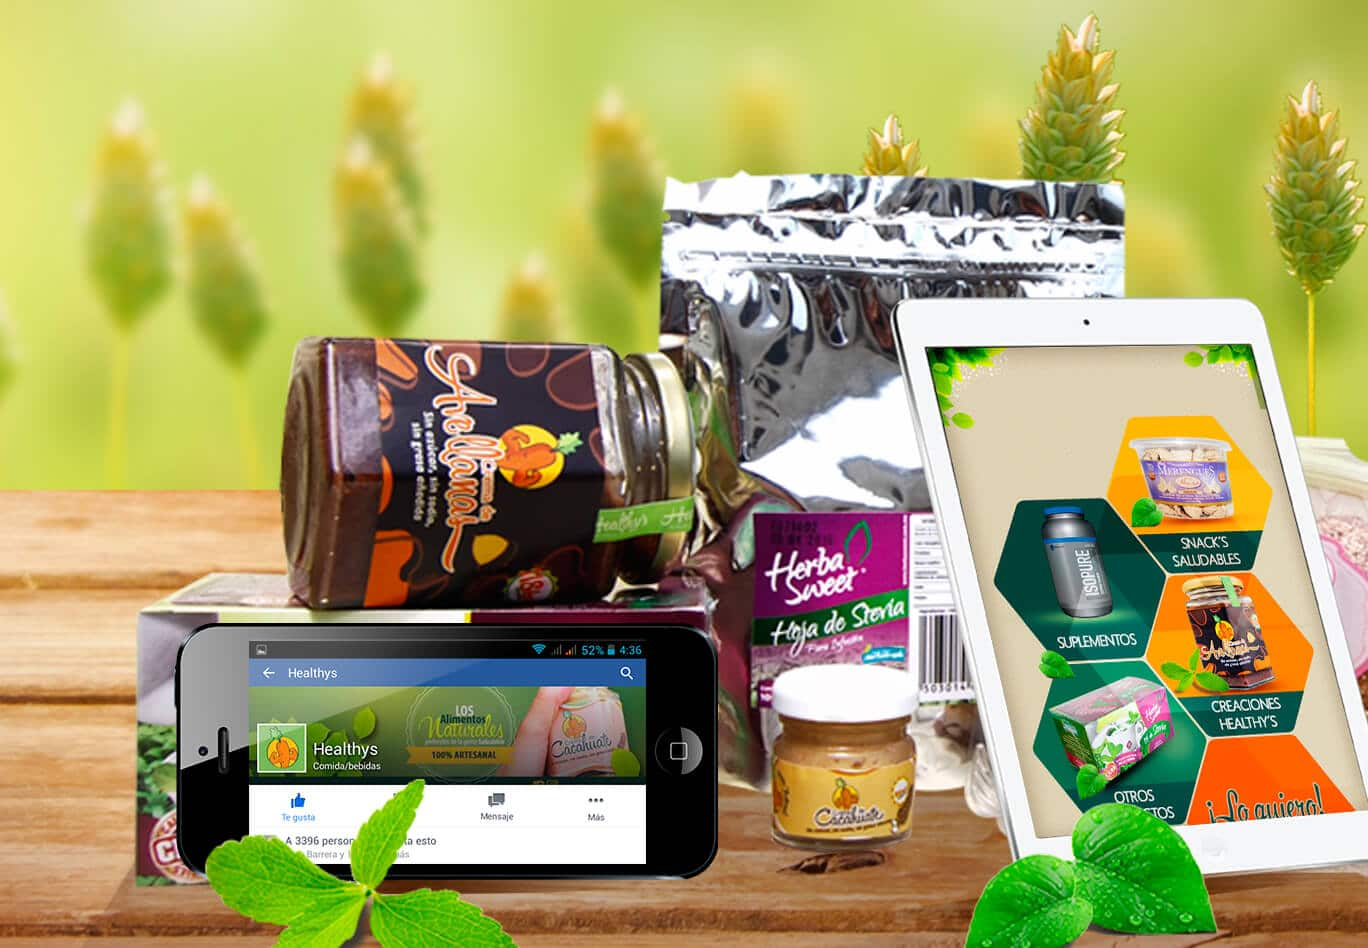 healthy'a productos naturales identidades corporativas